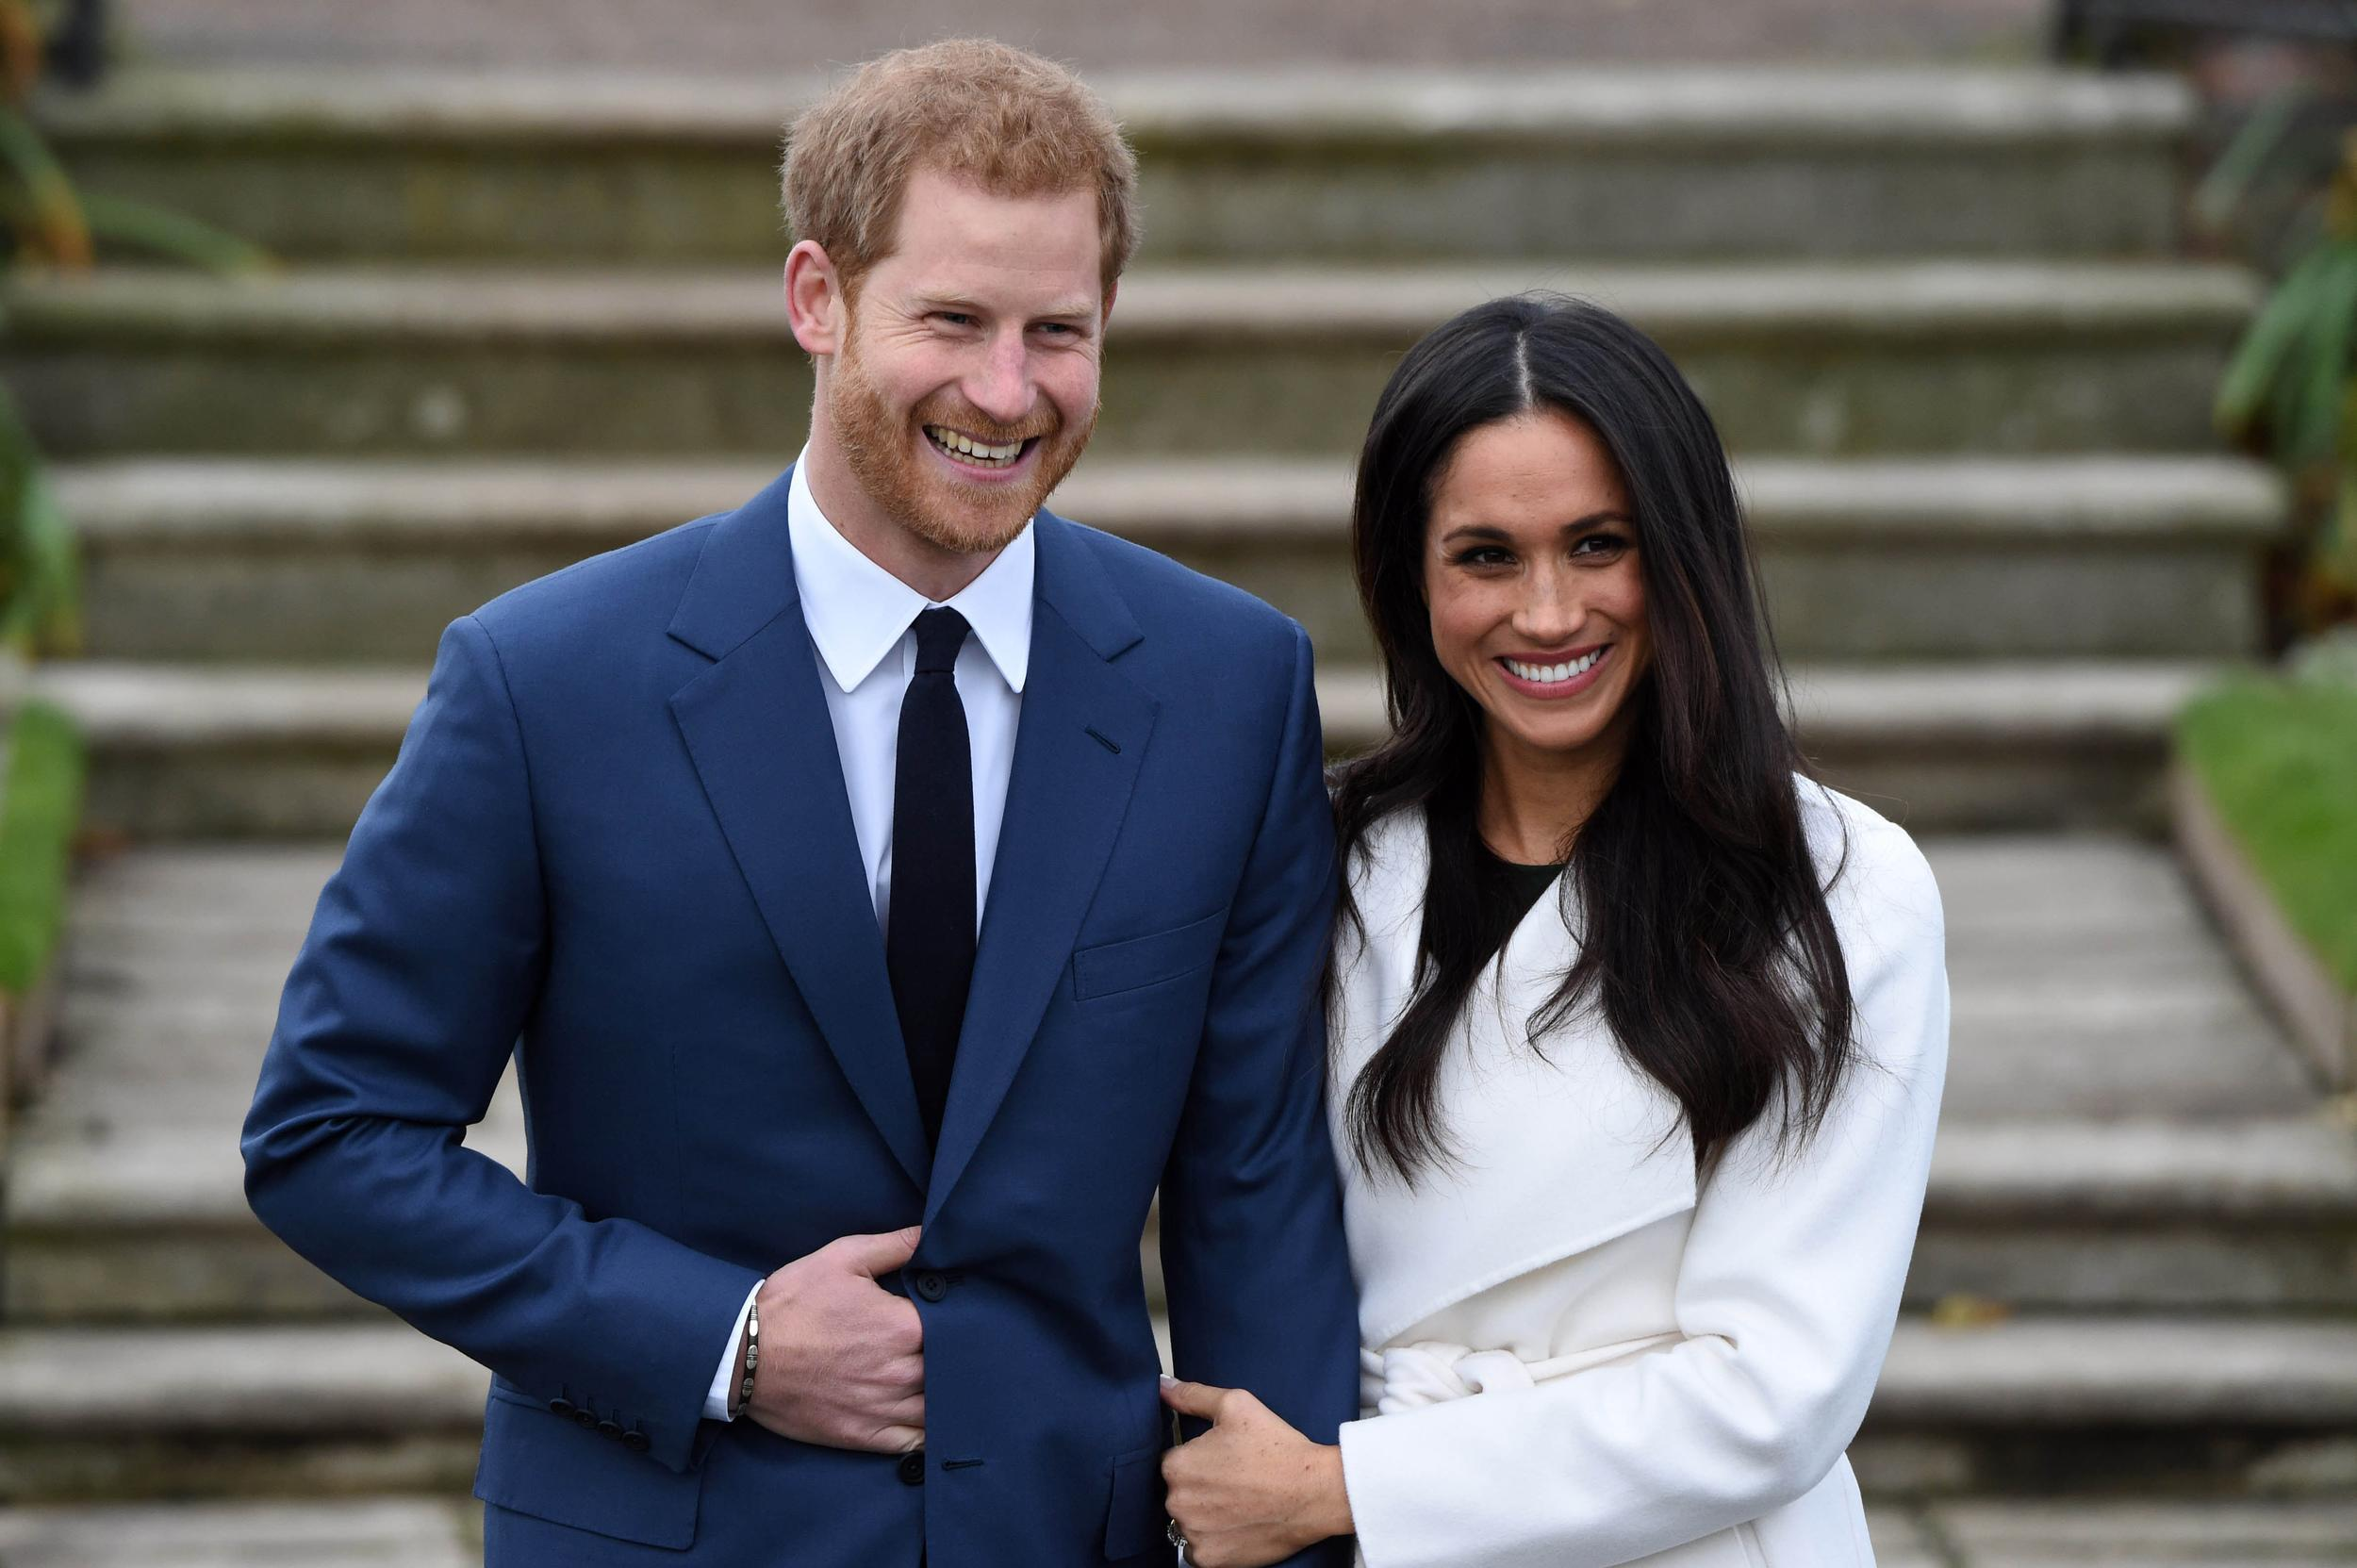 Prince Harry and Meghan Markle wedding date announced as May 19, 2018.   File Photo by: KGC-03/STAR MAX/IPx 2017 11/27/17 Prince Harry and Meghan Markle during an official photocall to announce the engagement of Prince Harry and actress Meghan Markle at The Sunken Gardens at Kensington Palace on November 27, 2017 in London, England.  His Royal Highness Prince Harry Of Wales and Ms. Meghan Markle are engaged to be married.  The wedding will take place in Spring 2018.  The couple became engaged in London earlier this month.  Prince Harry informed The Queen and other close members of his family and also sought and received the blessing of Ms. Markle's parents. (London, England, UK)